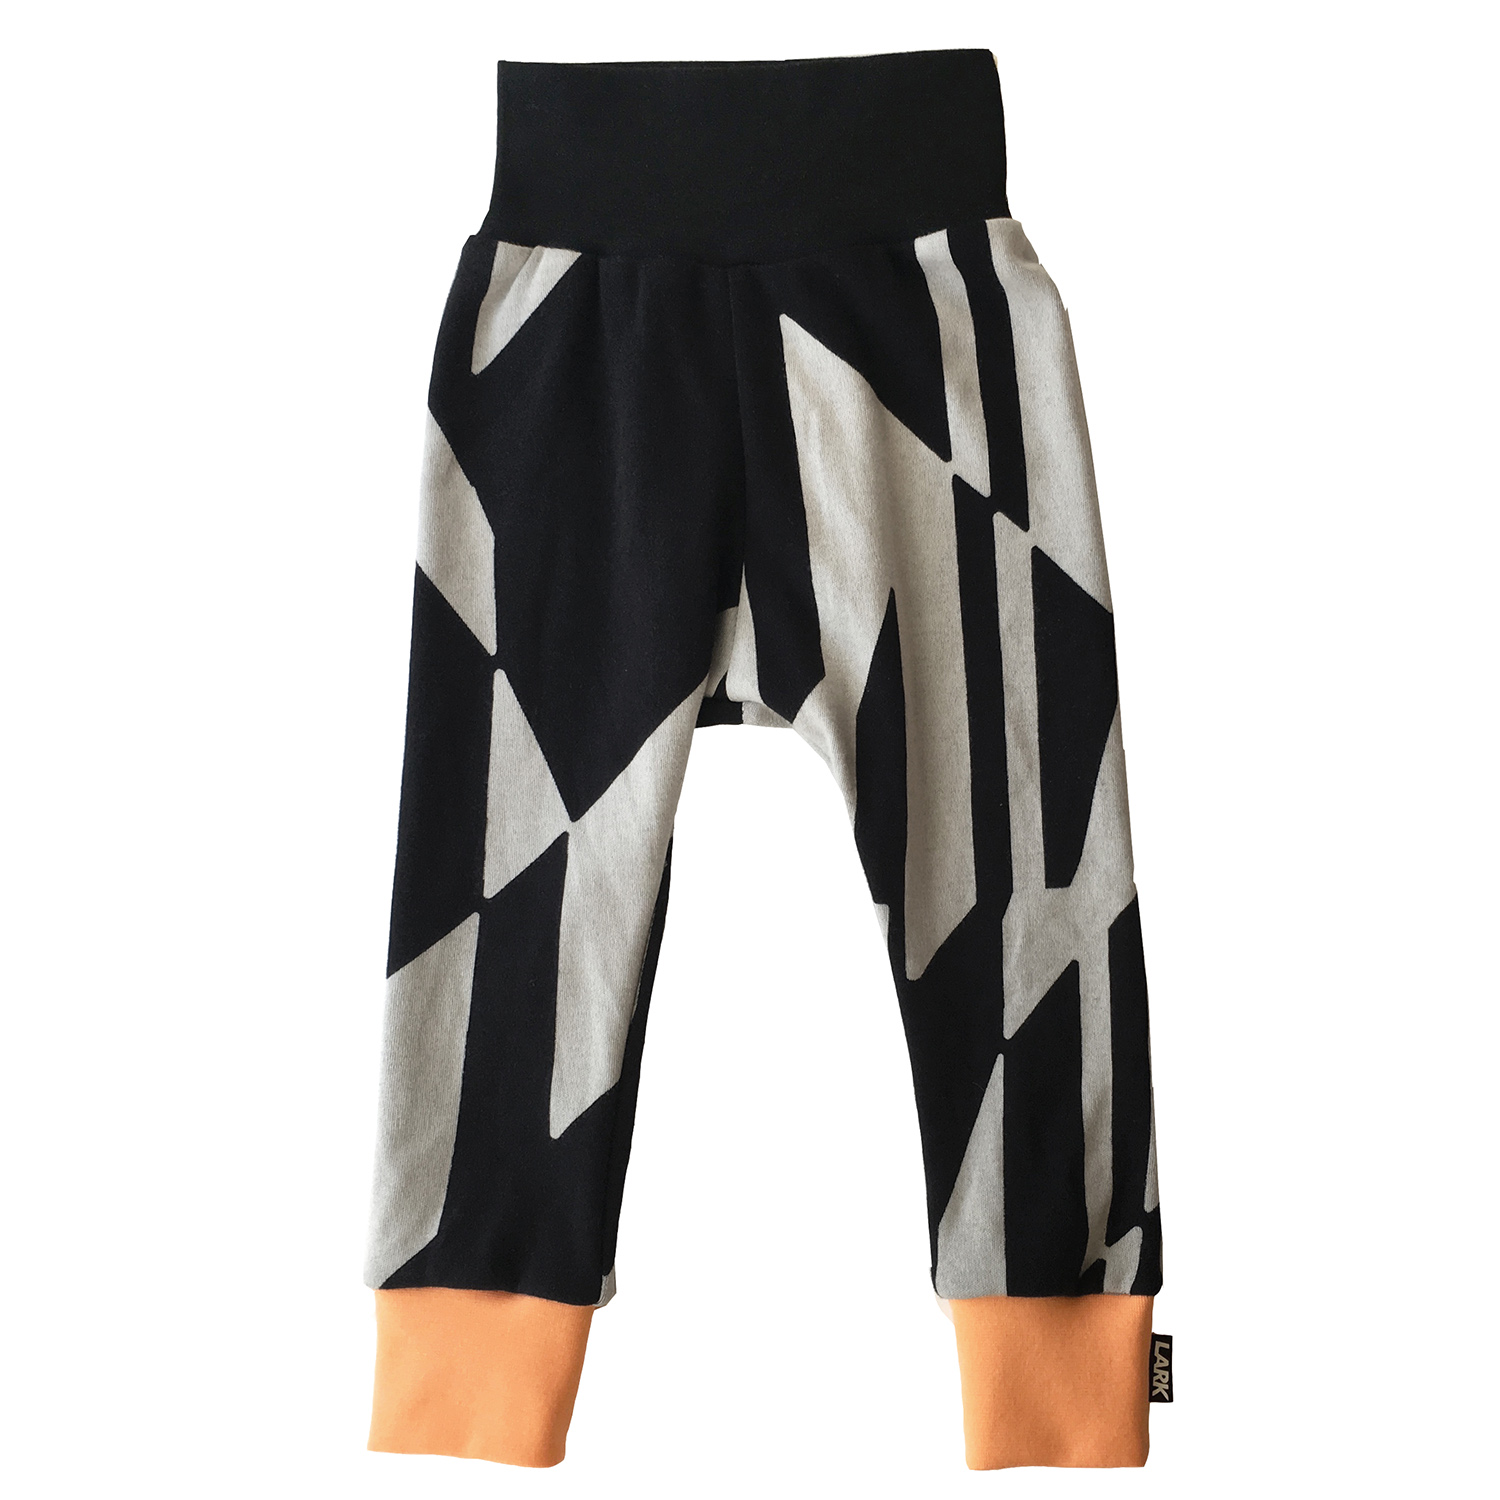 Dazzle Pants - Geometric print pants that will grow with your child - flip down the waistband or roll up the cuffs till you need the extra length. Lark have thought about how they produce their clothes, with the least impact environmentally.Don't forget to add the Mango Tango cuff colour for a bright pop.Dazzle Print Pants £22 Lark